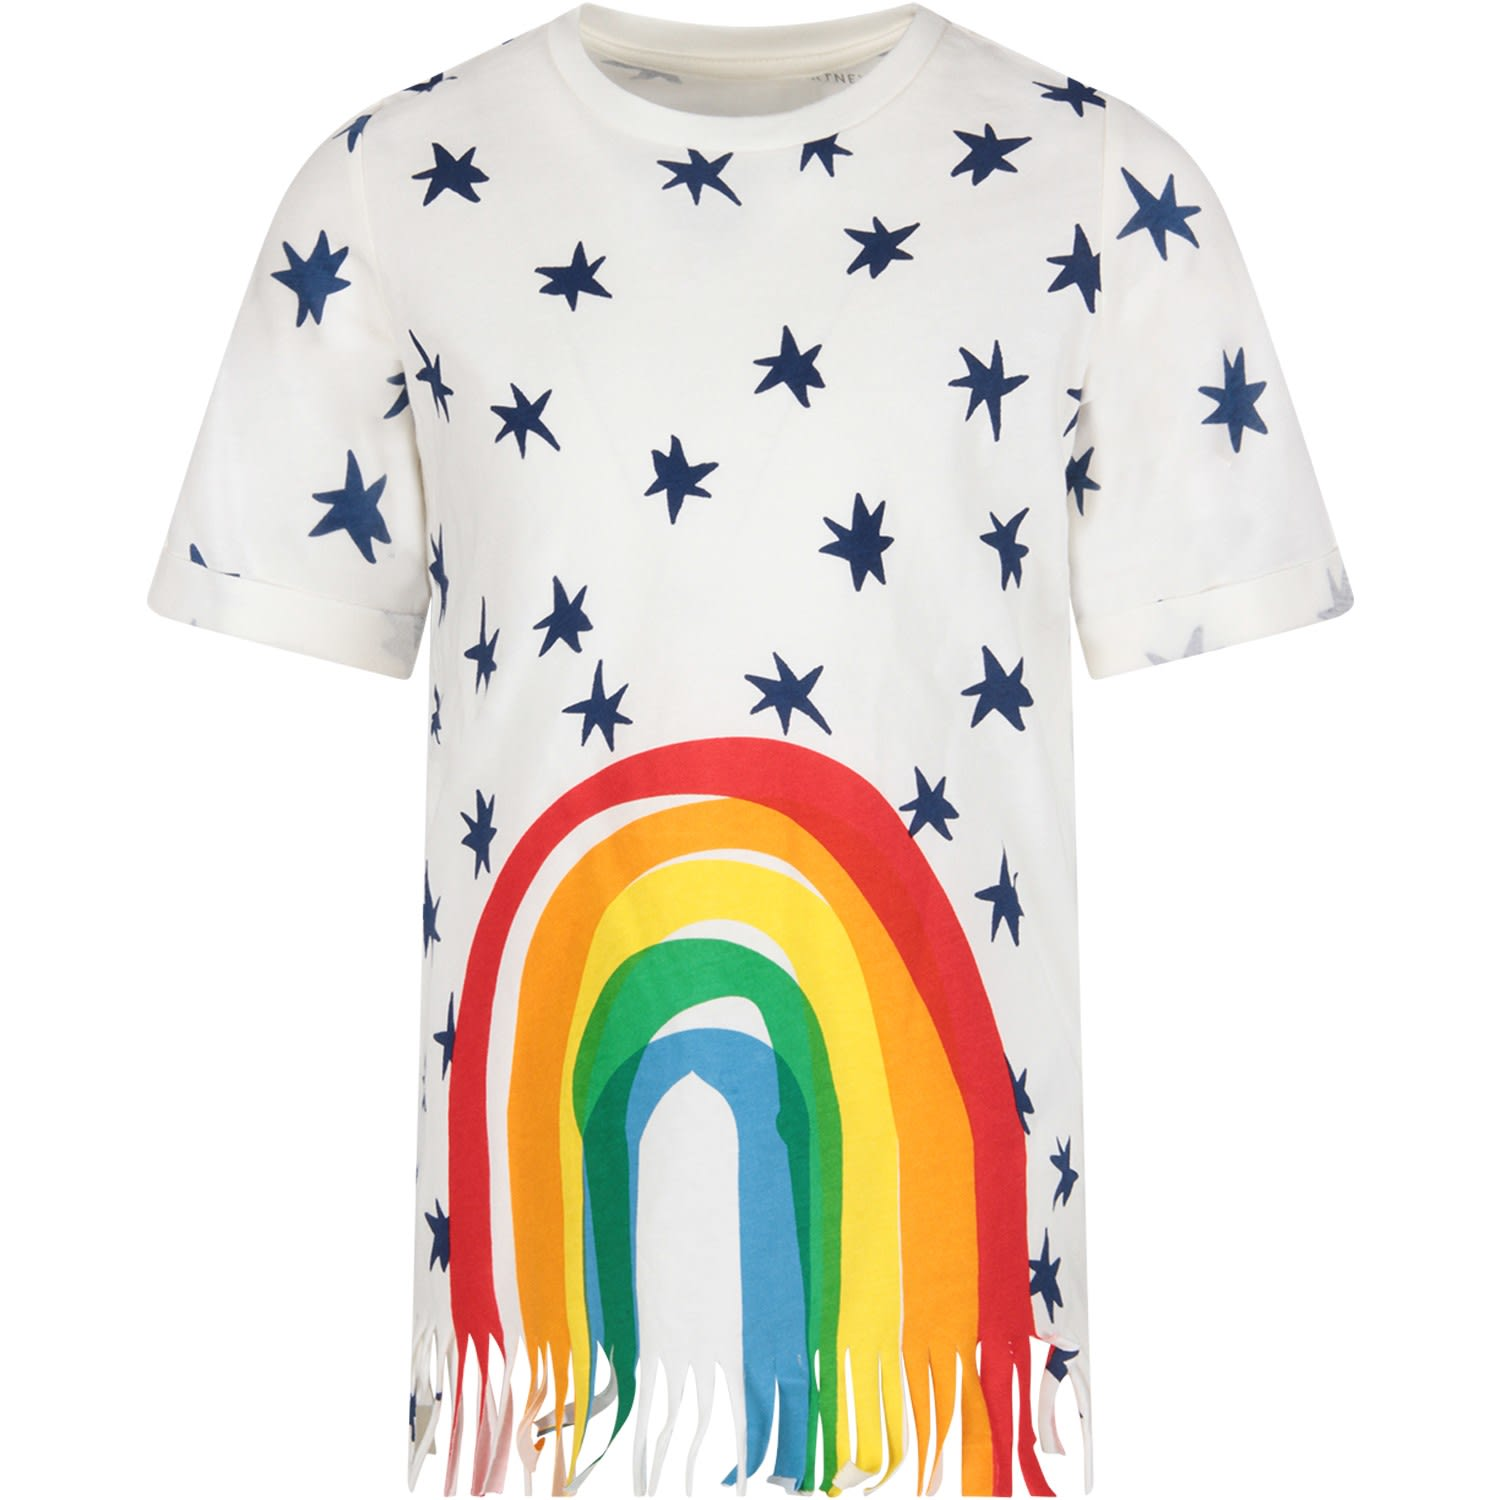 Buy Stella McCartney Kids White Dress With Stars For Girl online, shop Stella McCartney Kids with free shipping